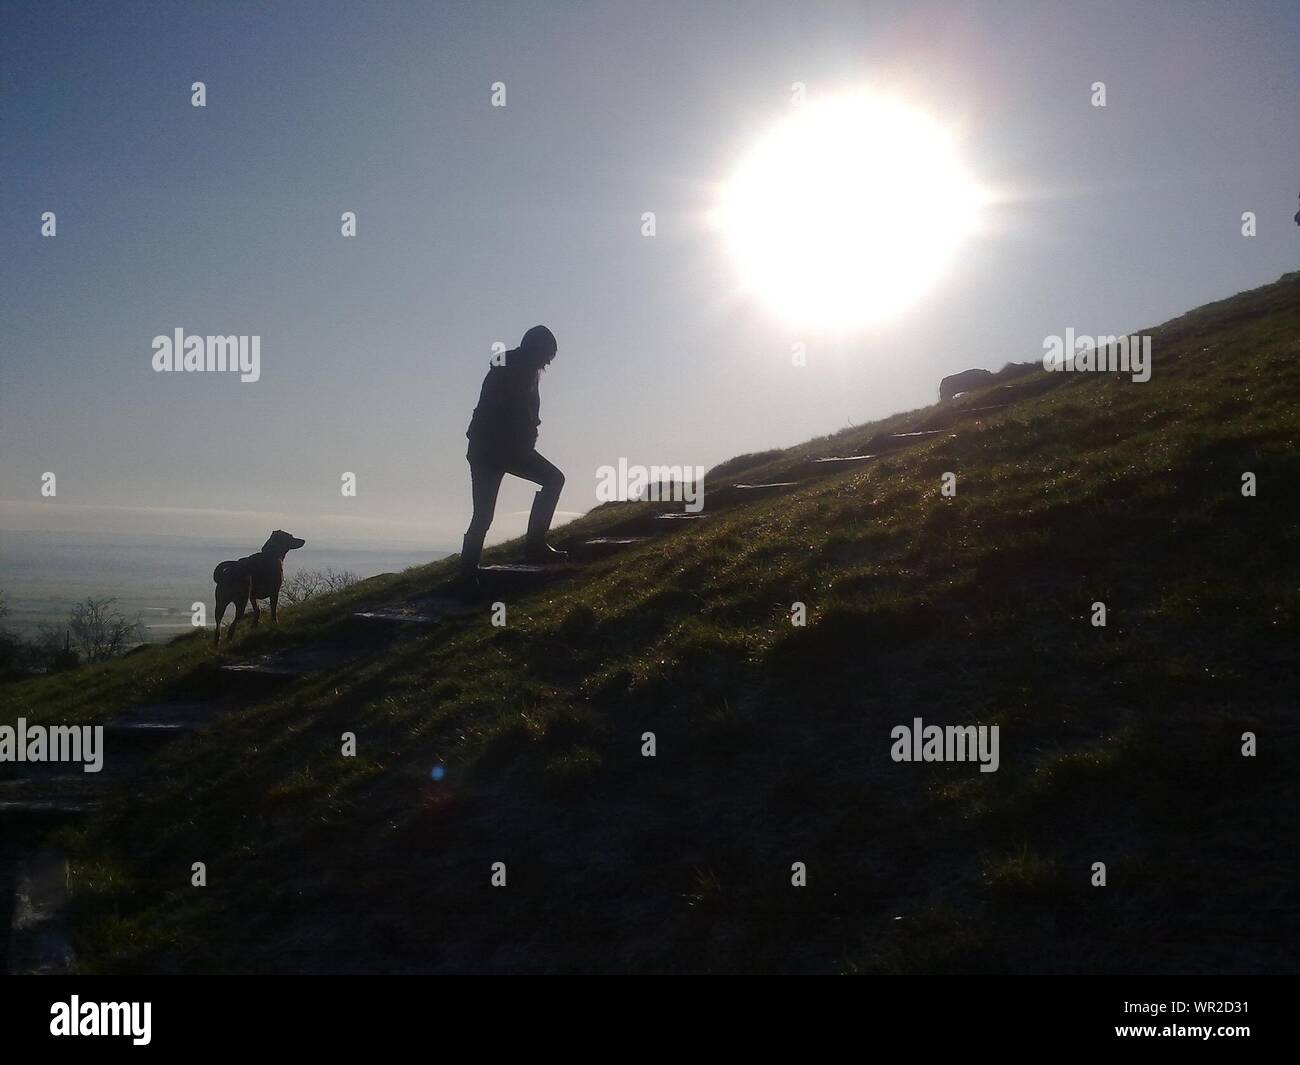 Silhouette Of Man With Dog Walking On Steps On Hill Stock Photo